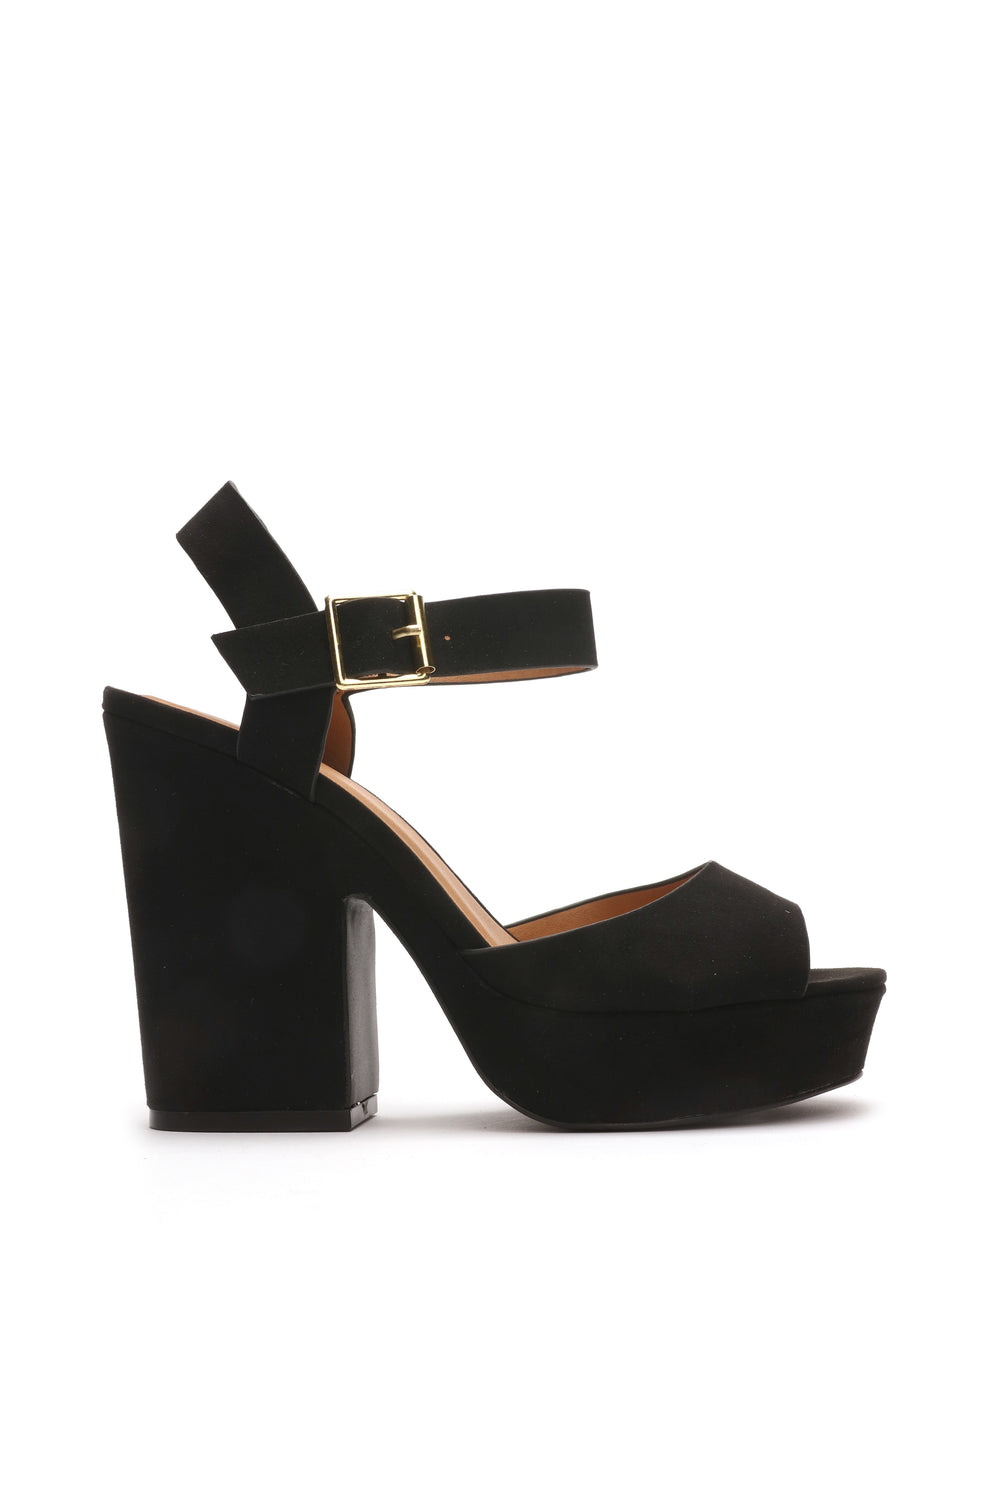 You Could Have It All Heel - Black